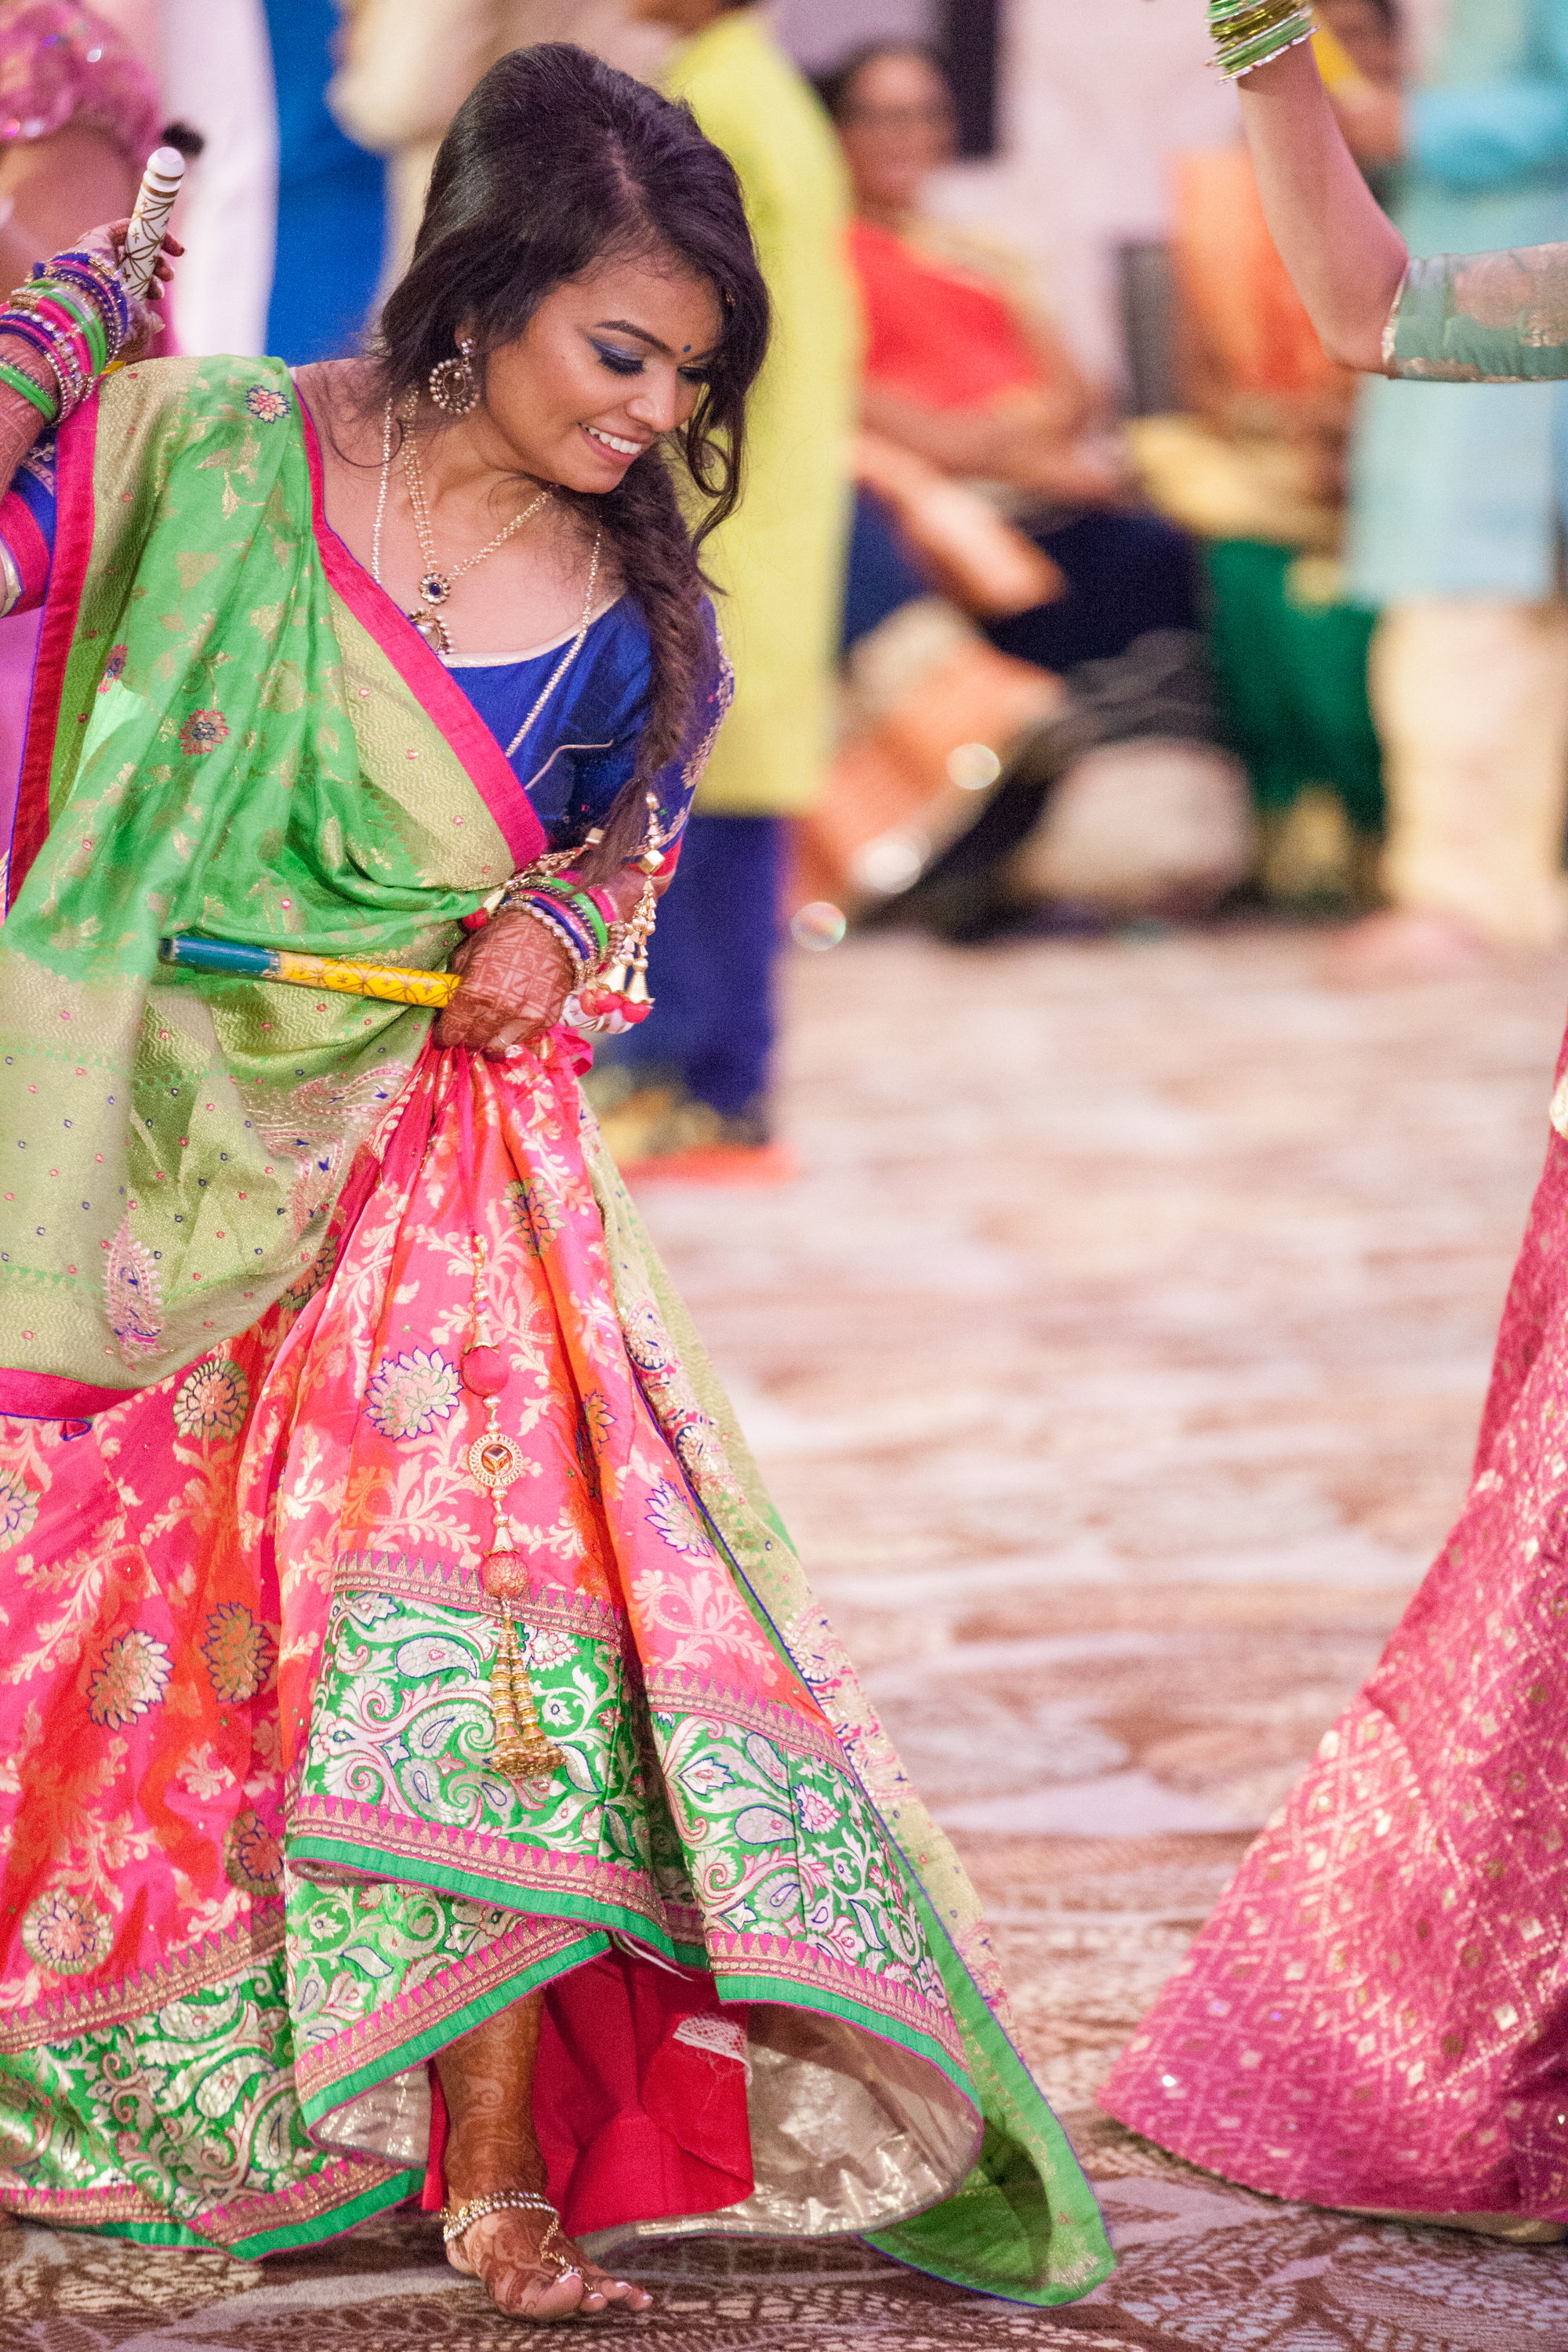 indian-bride-dancing.jpg